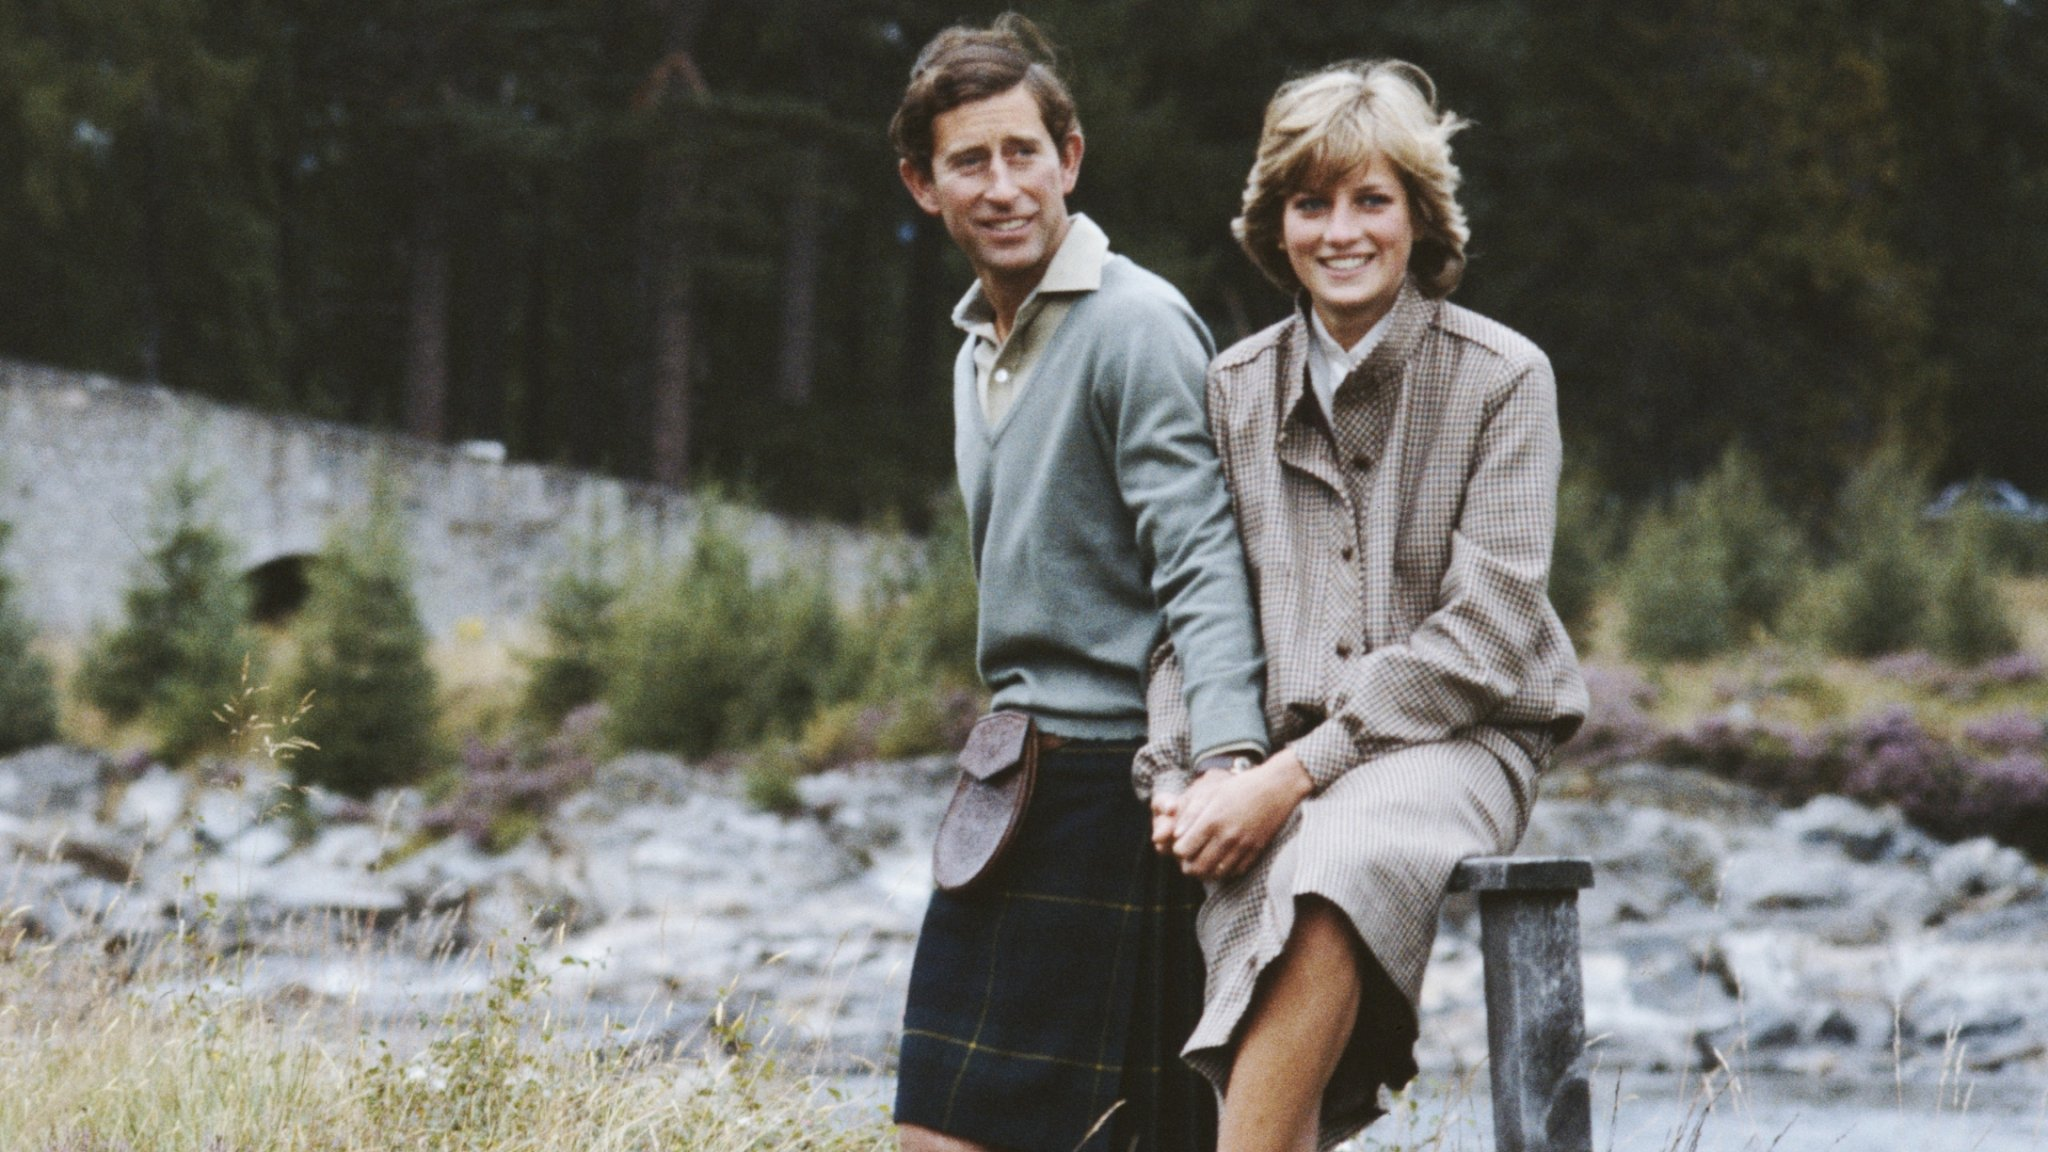 Old Footage Shows Princess Diana Cracking Up While Prince Charles Wears A Hard Hat